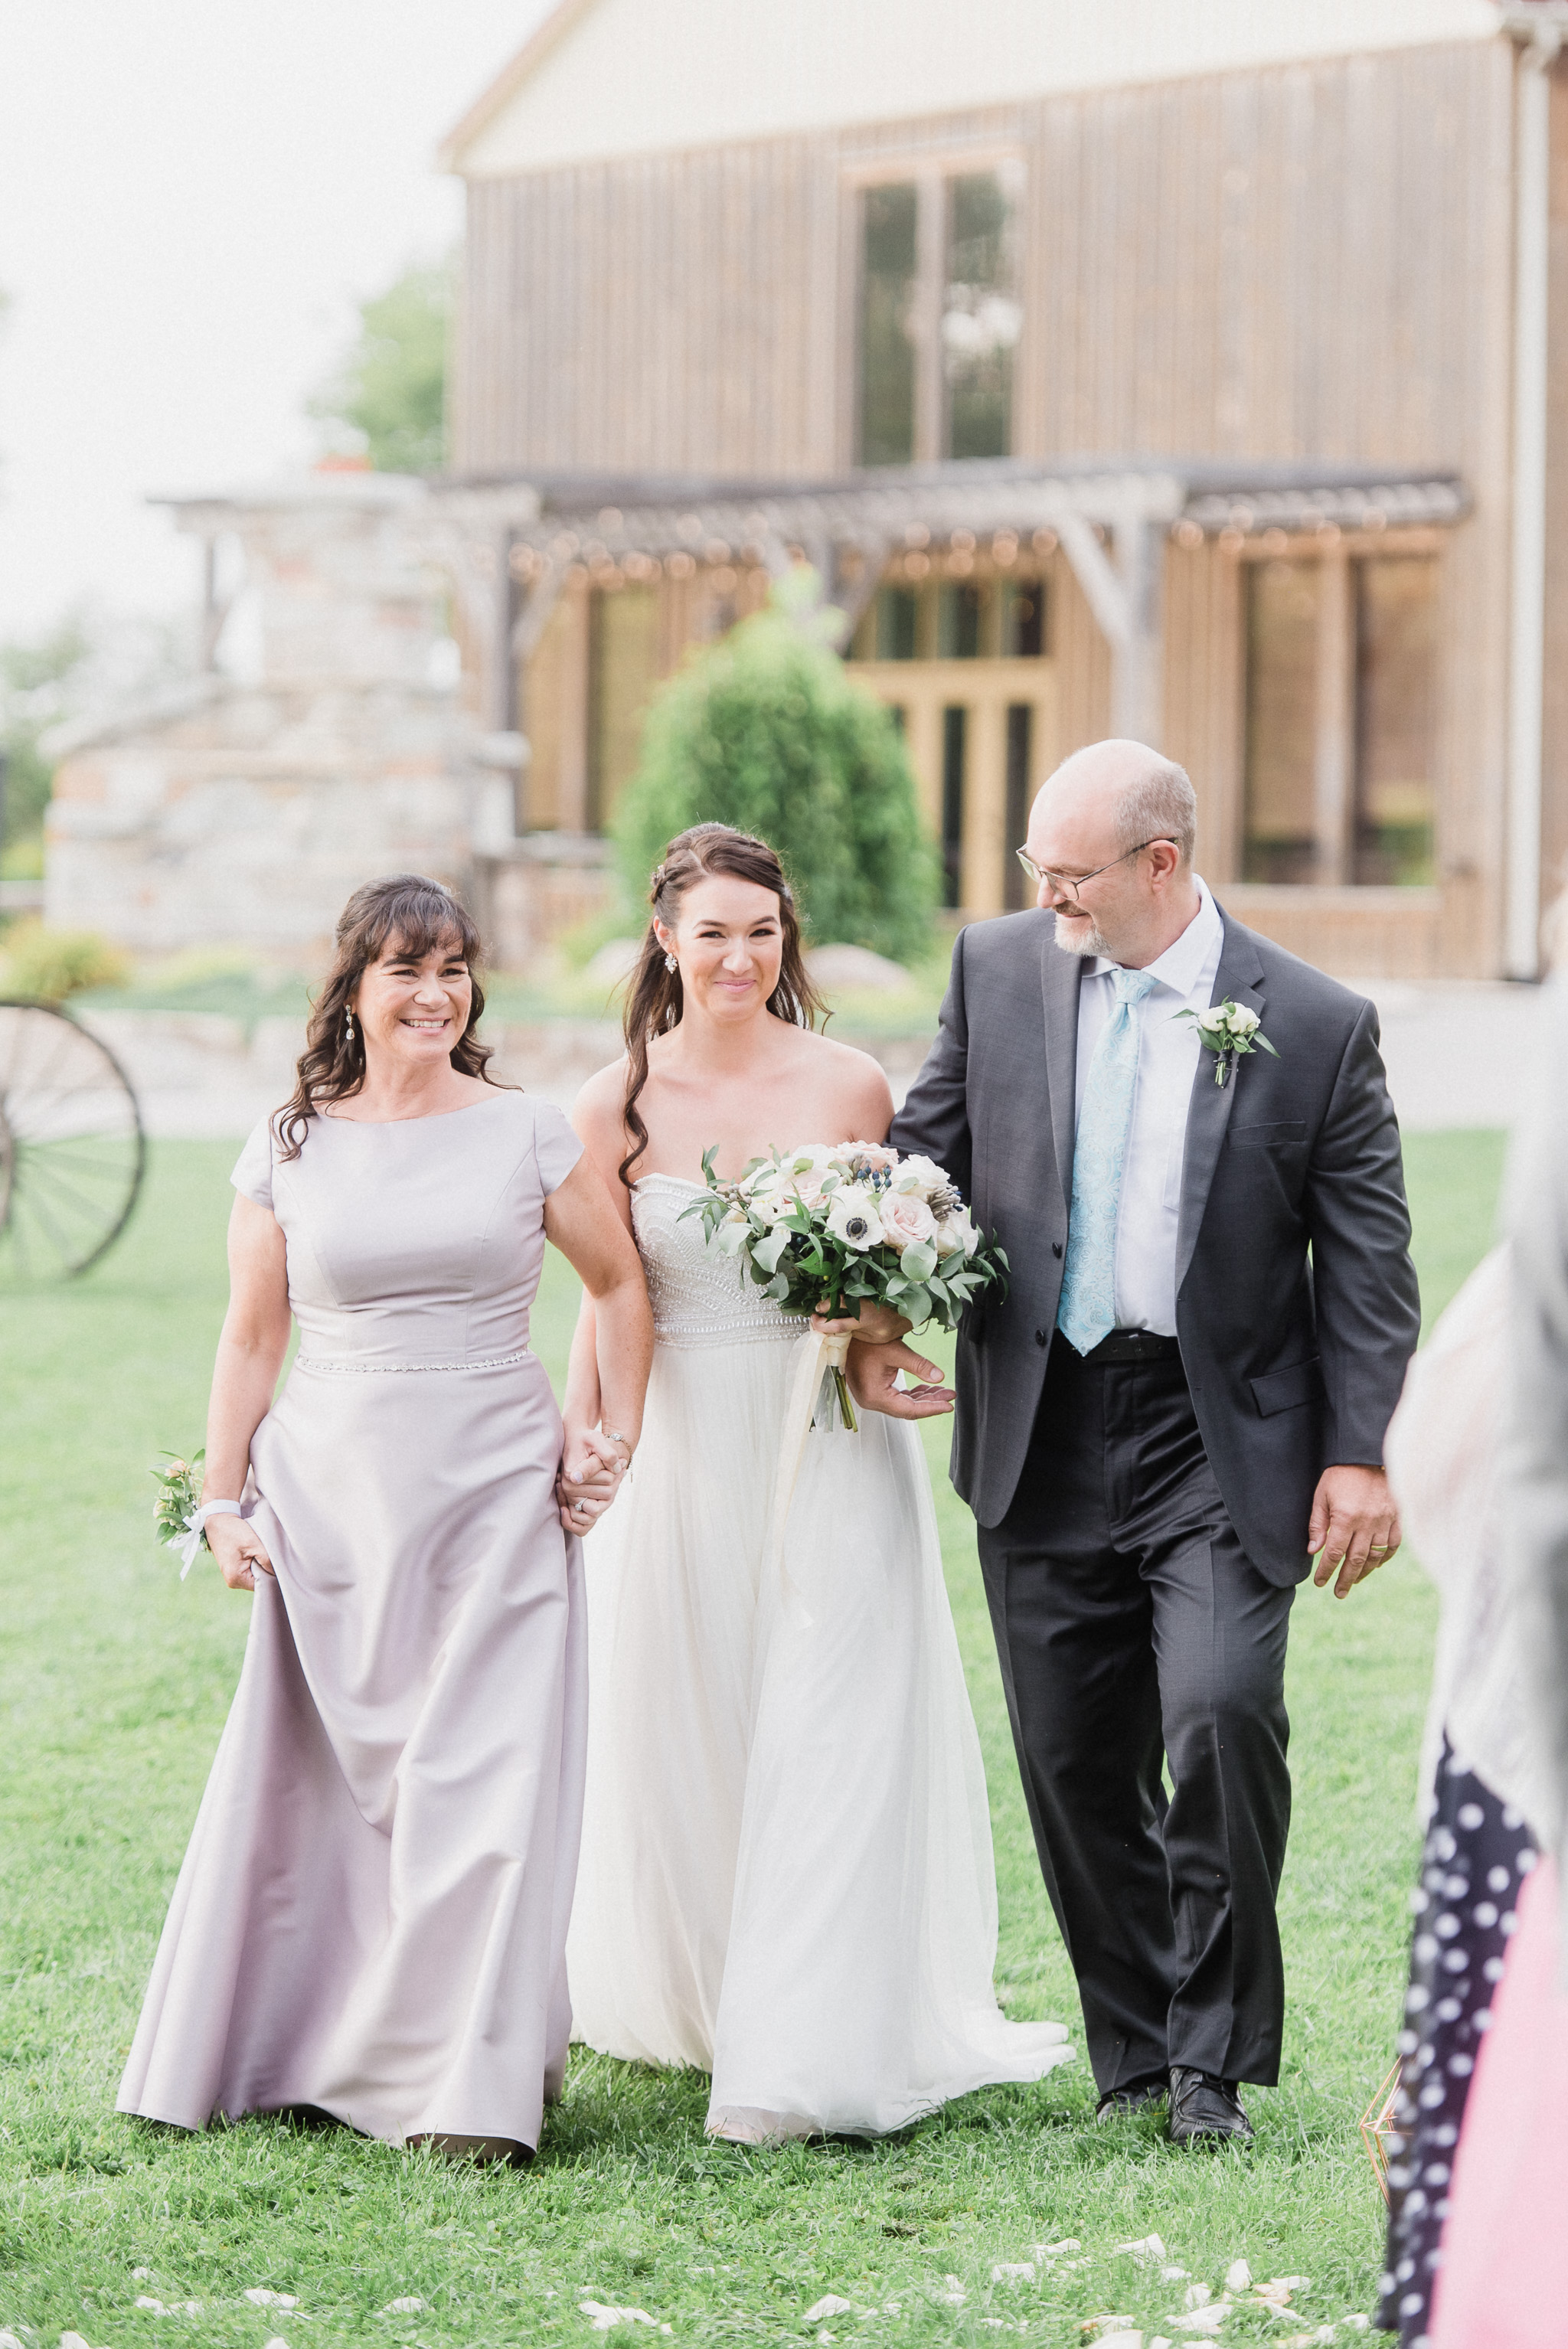 Holland Marsh Wineries wedding photos by Jenn Kavanagh Photography